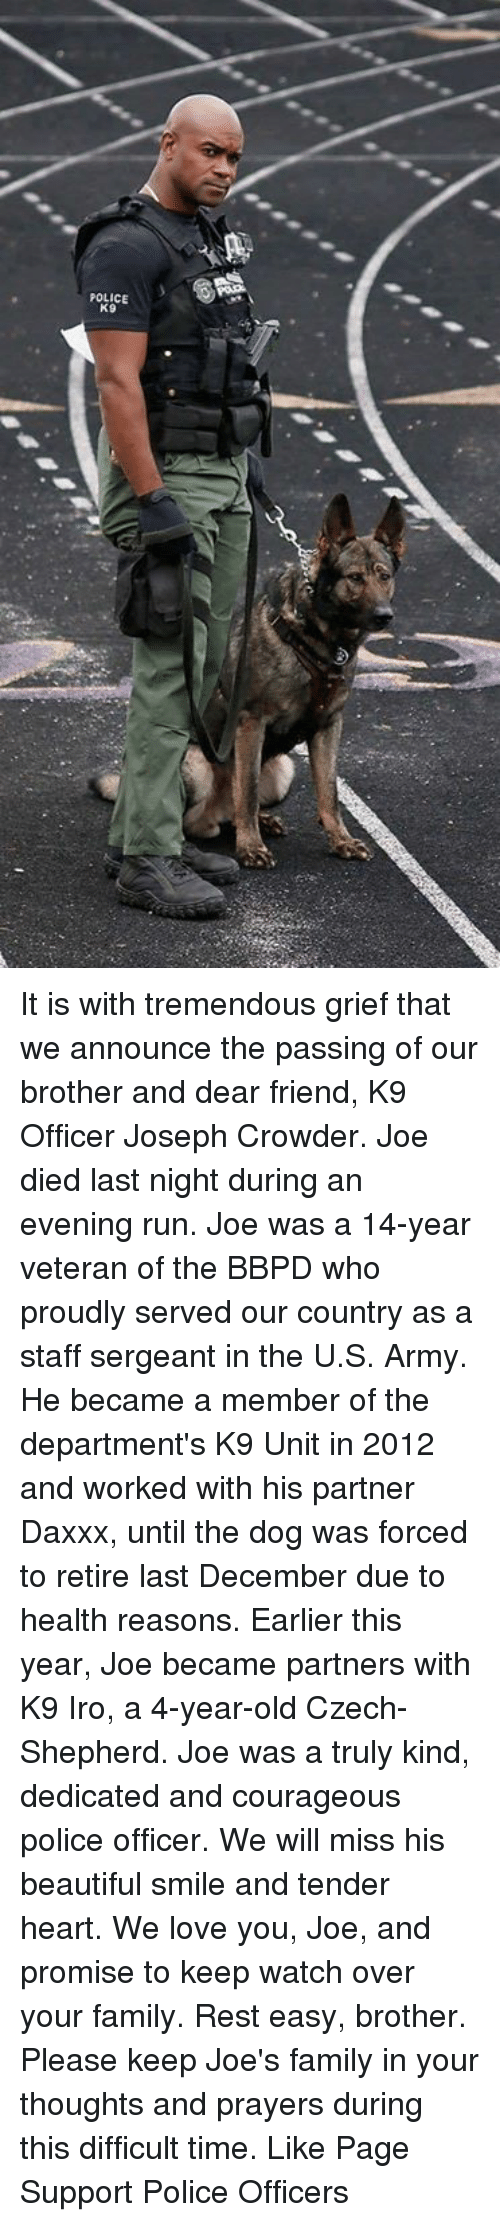 staff sergeant: POLICE  K9 It is with tremendous grief that we announce the passing of our brother and dear friend, K9 Officer Joseph Crowder. Joe died last night during an evening run. Joe was a 14-year veteran of the BBPD who proudly served our country as a staff sergeant in the U.S. Army. He became a member of the department's K9 Unit in 2012 and worked with his partner Daxxx, until the dog was forced to retire last December due to health reasons. Earlier this year, Joe became partners with K9 Iro, a 4-year-old Czech-Shepherd. Joe was a truly kind, dedicated and courageous police officer. We will miss his beautiful smile and tender heart. We love you, Joe, and promise to keep watch over your family. Rest easy, brother. Please keep Joe's family in your thoughts and prayers during this difficult time. Like Page Support Police Officers